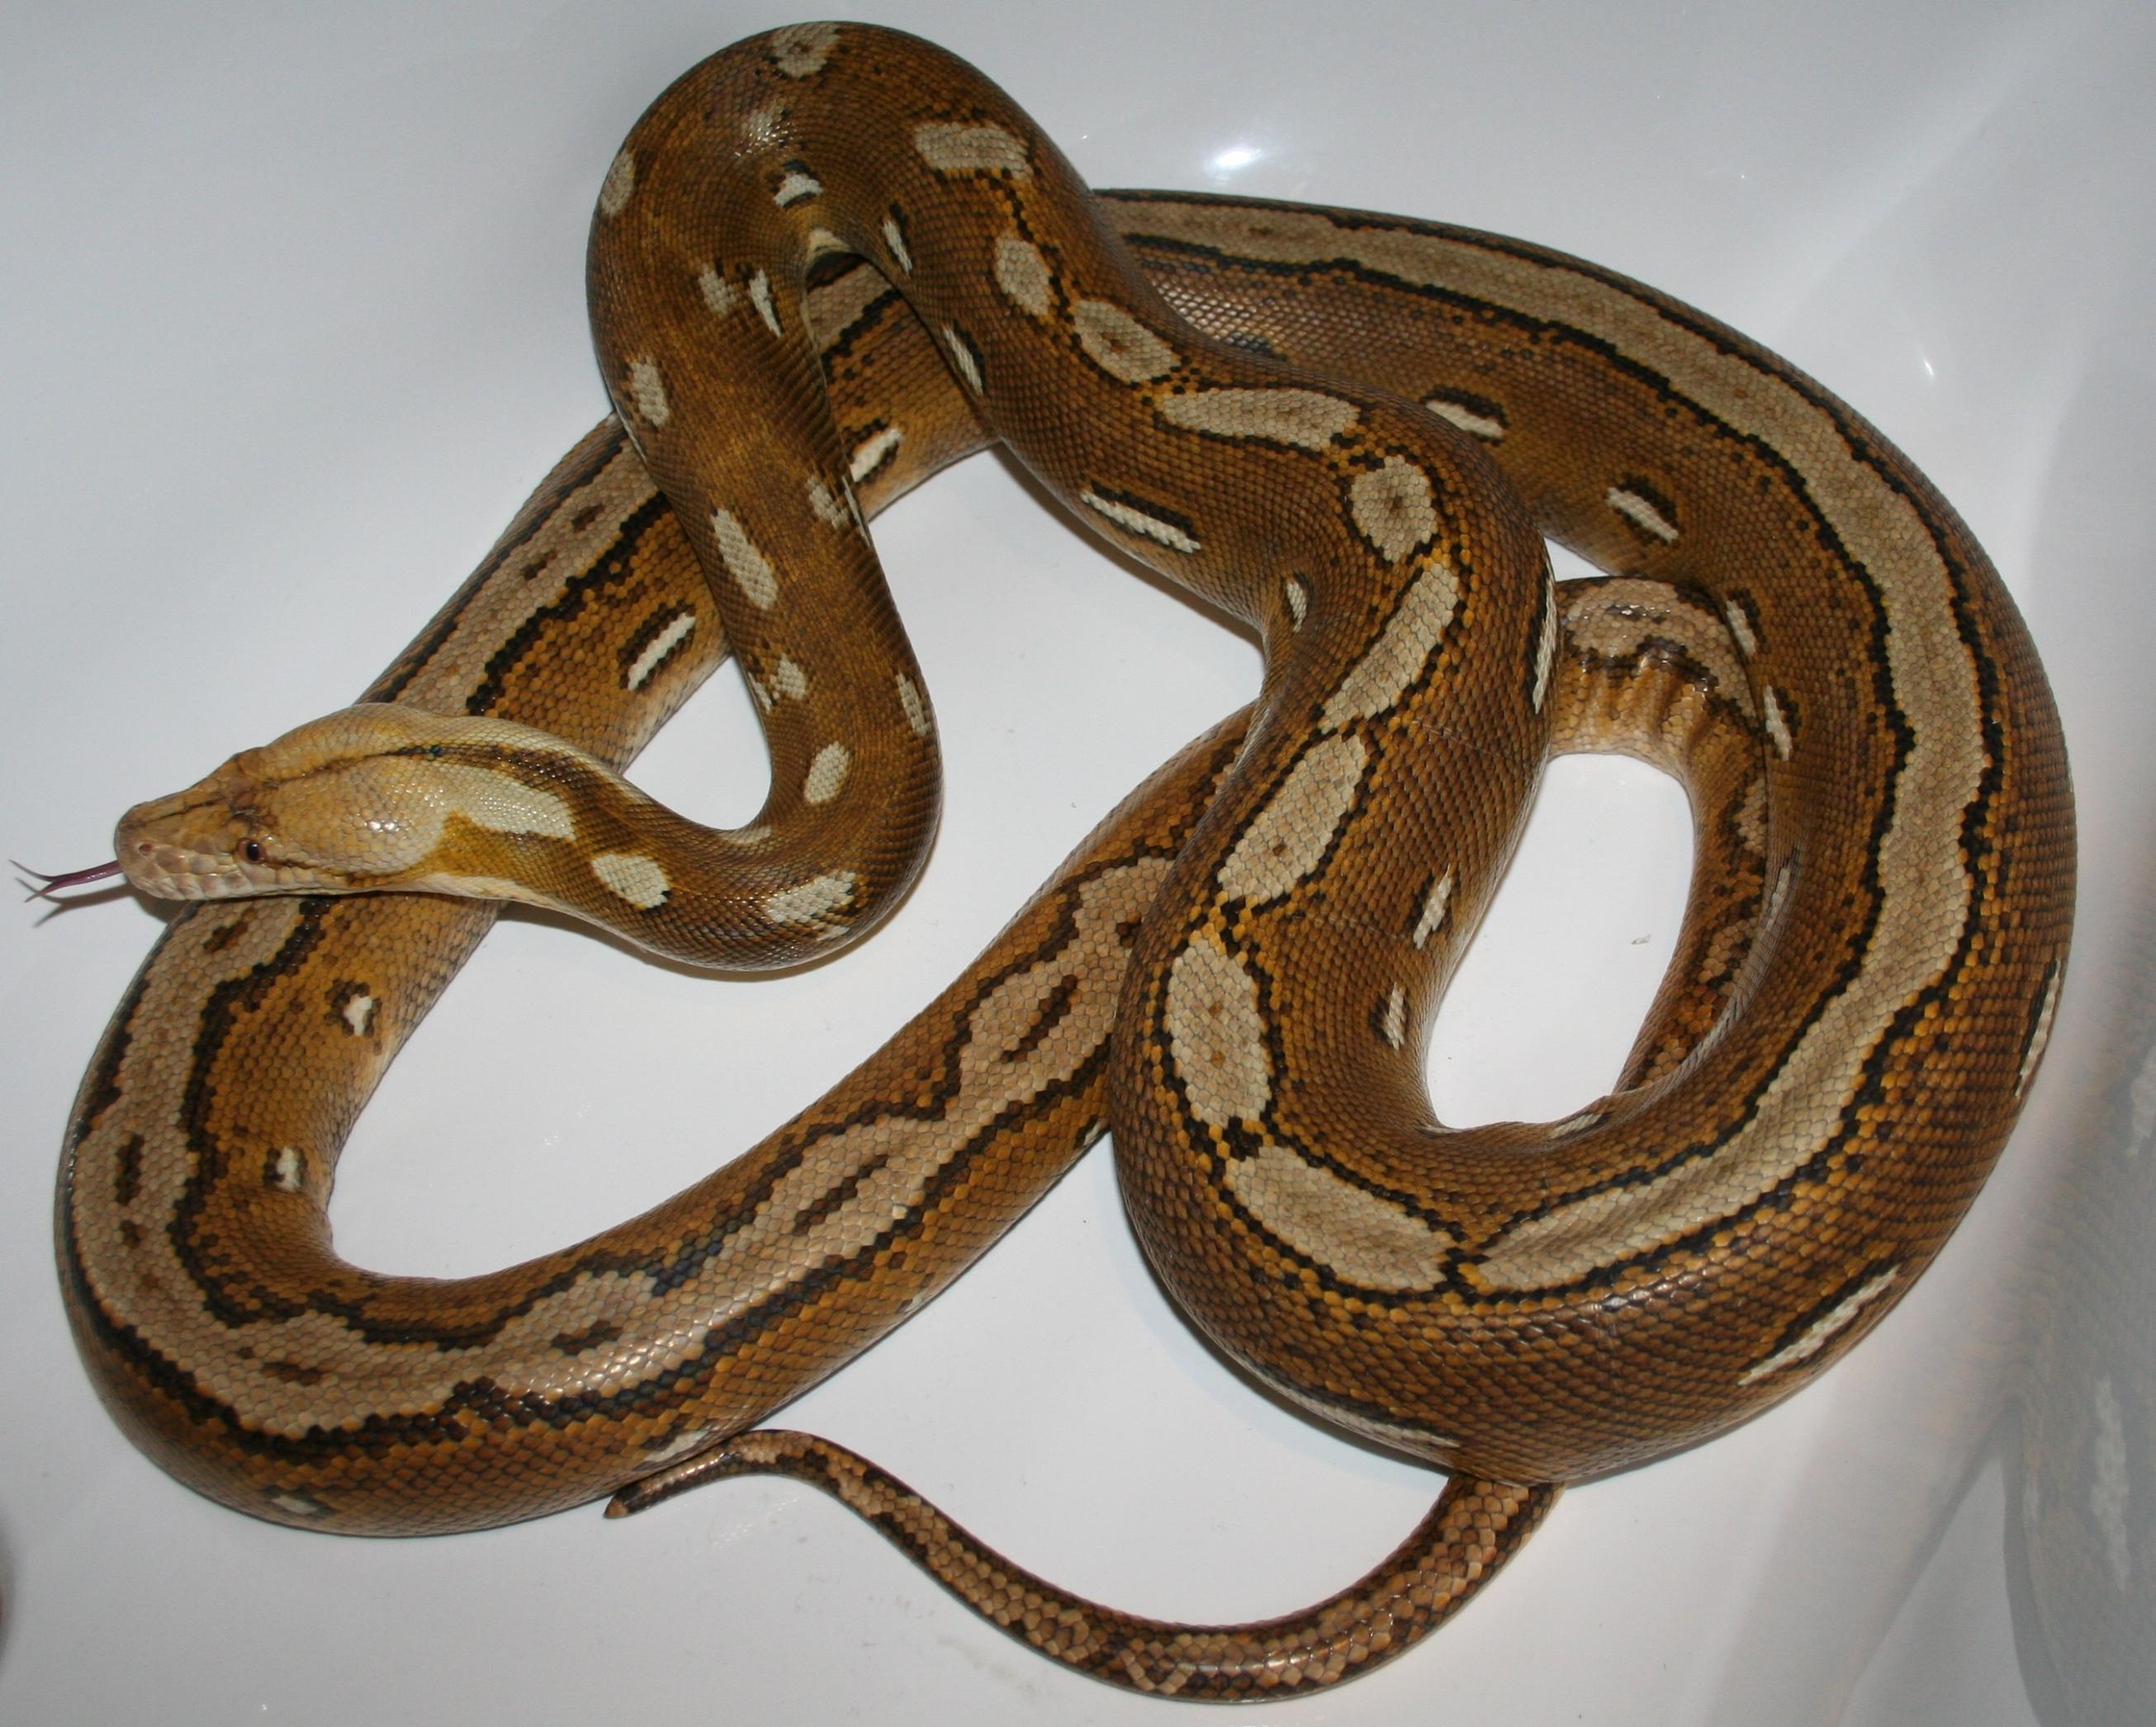 Baby Reticulated Python Reticulated python morphs for